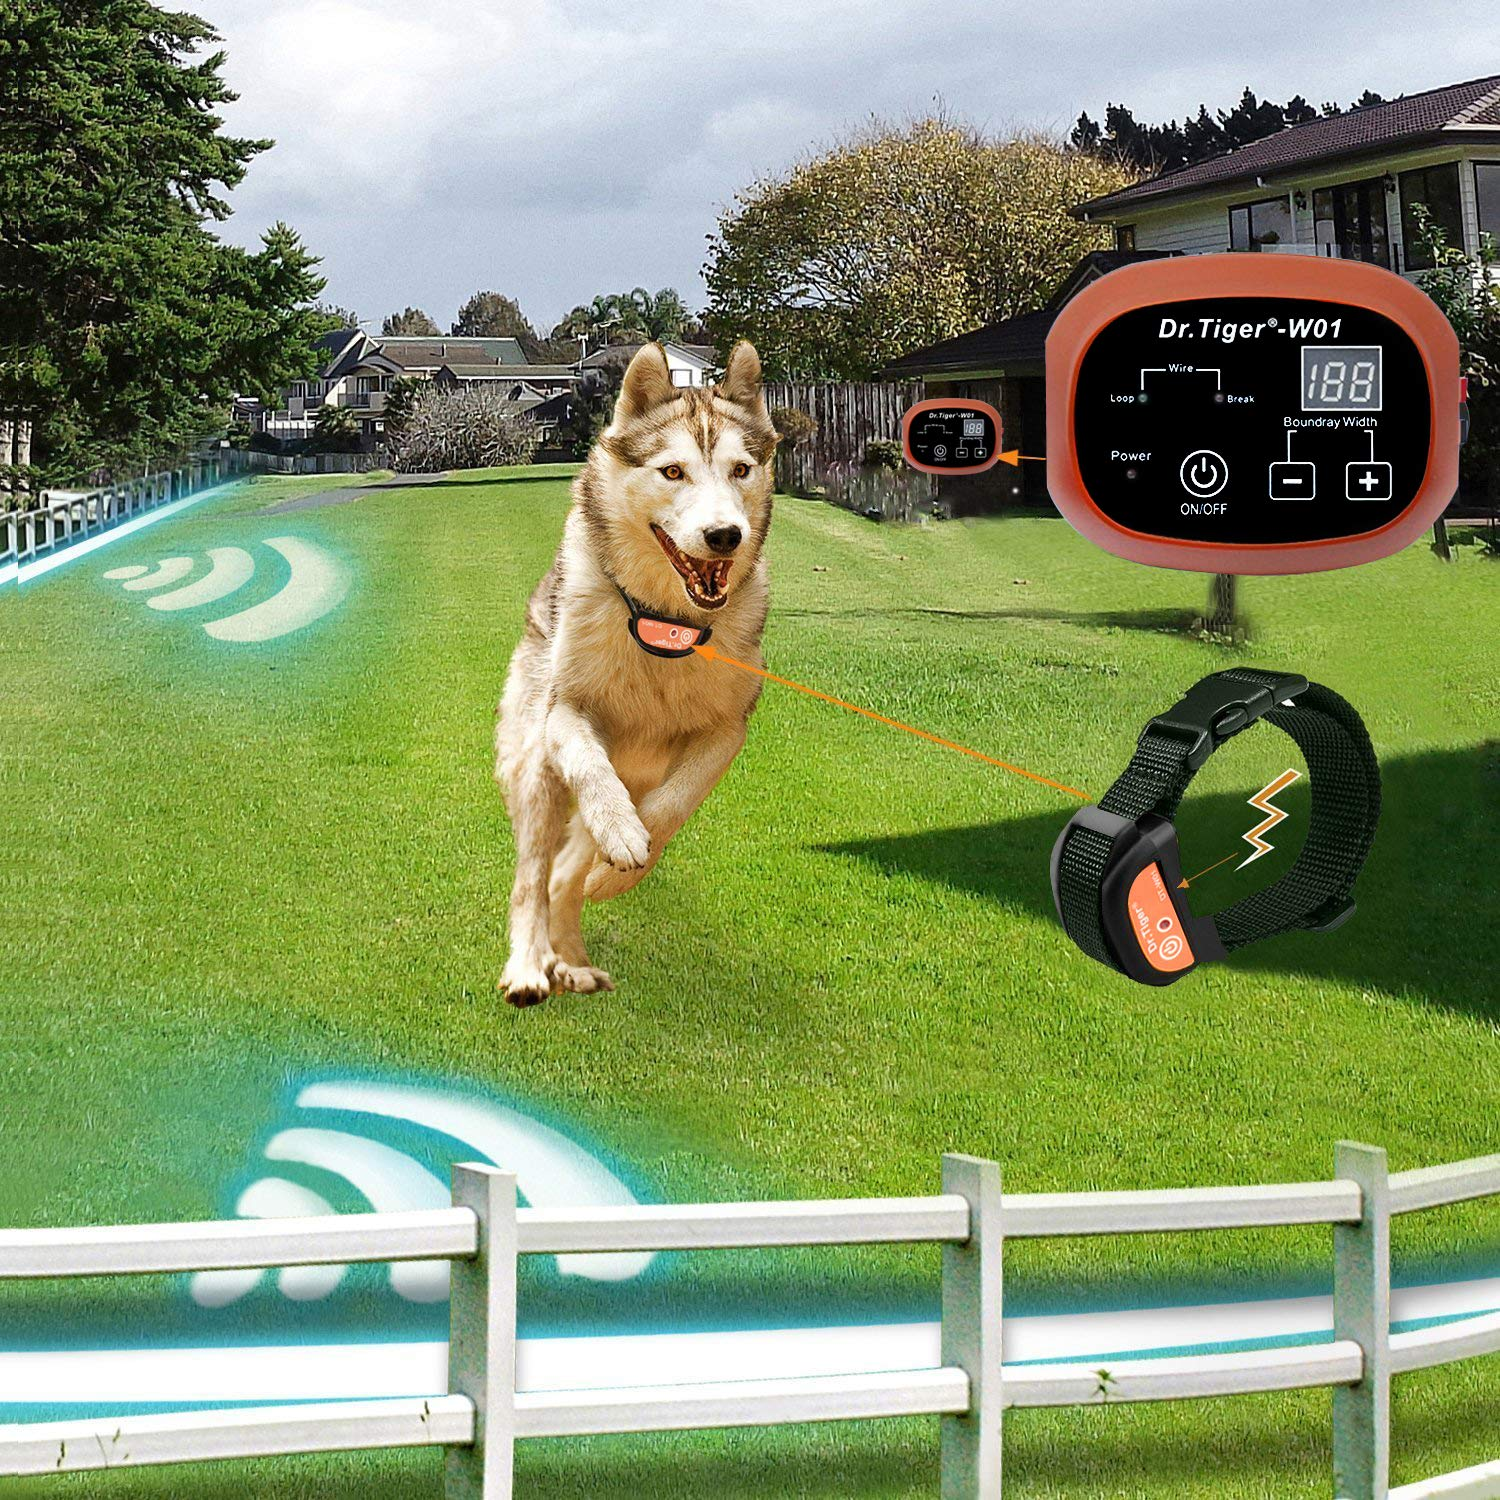 Suitable for Small Underground Fence Containment Systerm Equip Rechargeable Receiver Collar Best Pet Safety Solution Medium MASBRILL Electric Dog Fence Big Dogs